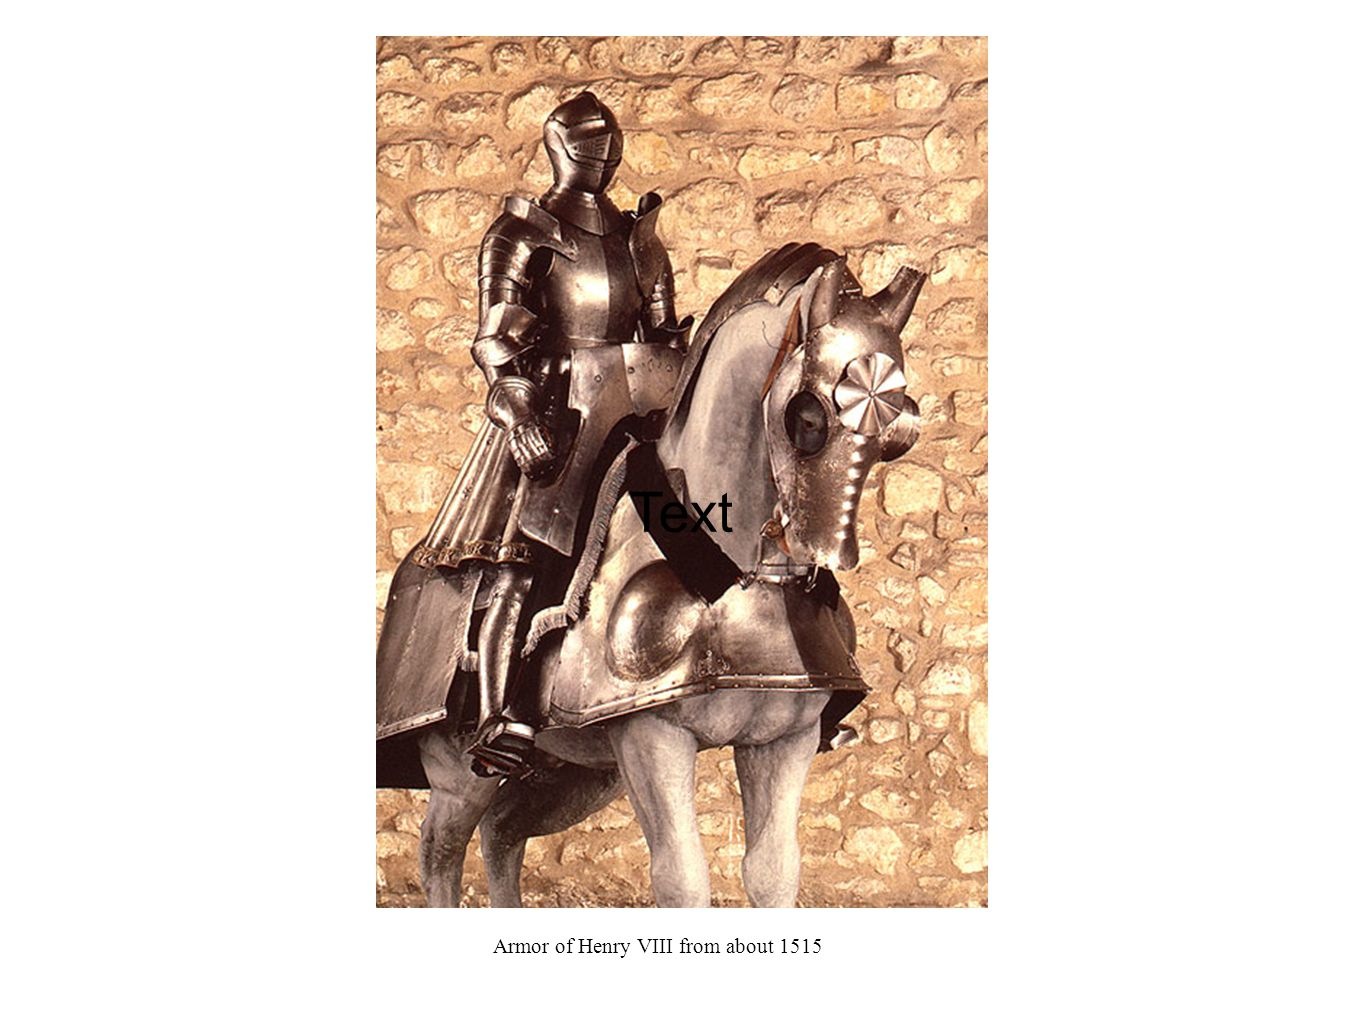 Text Armor of Henry VIII from about 1515